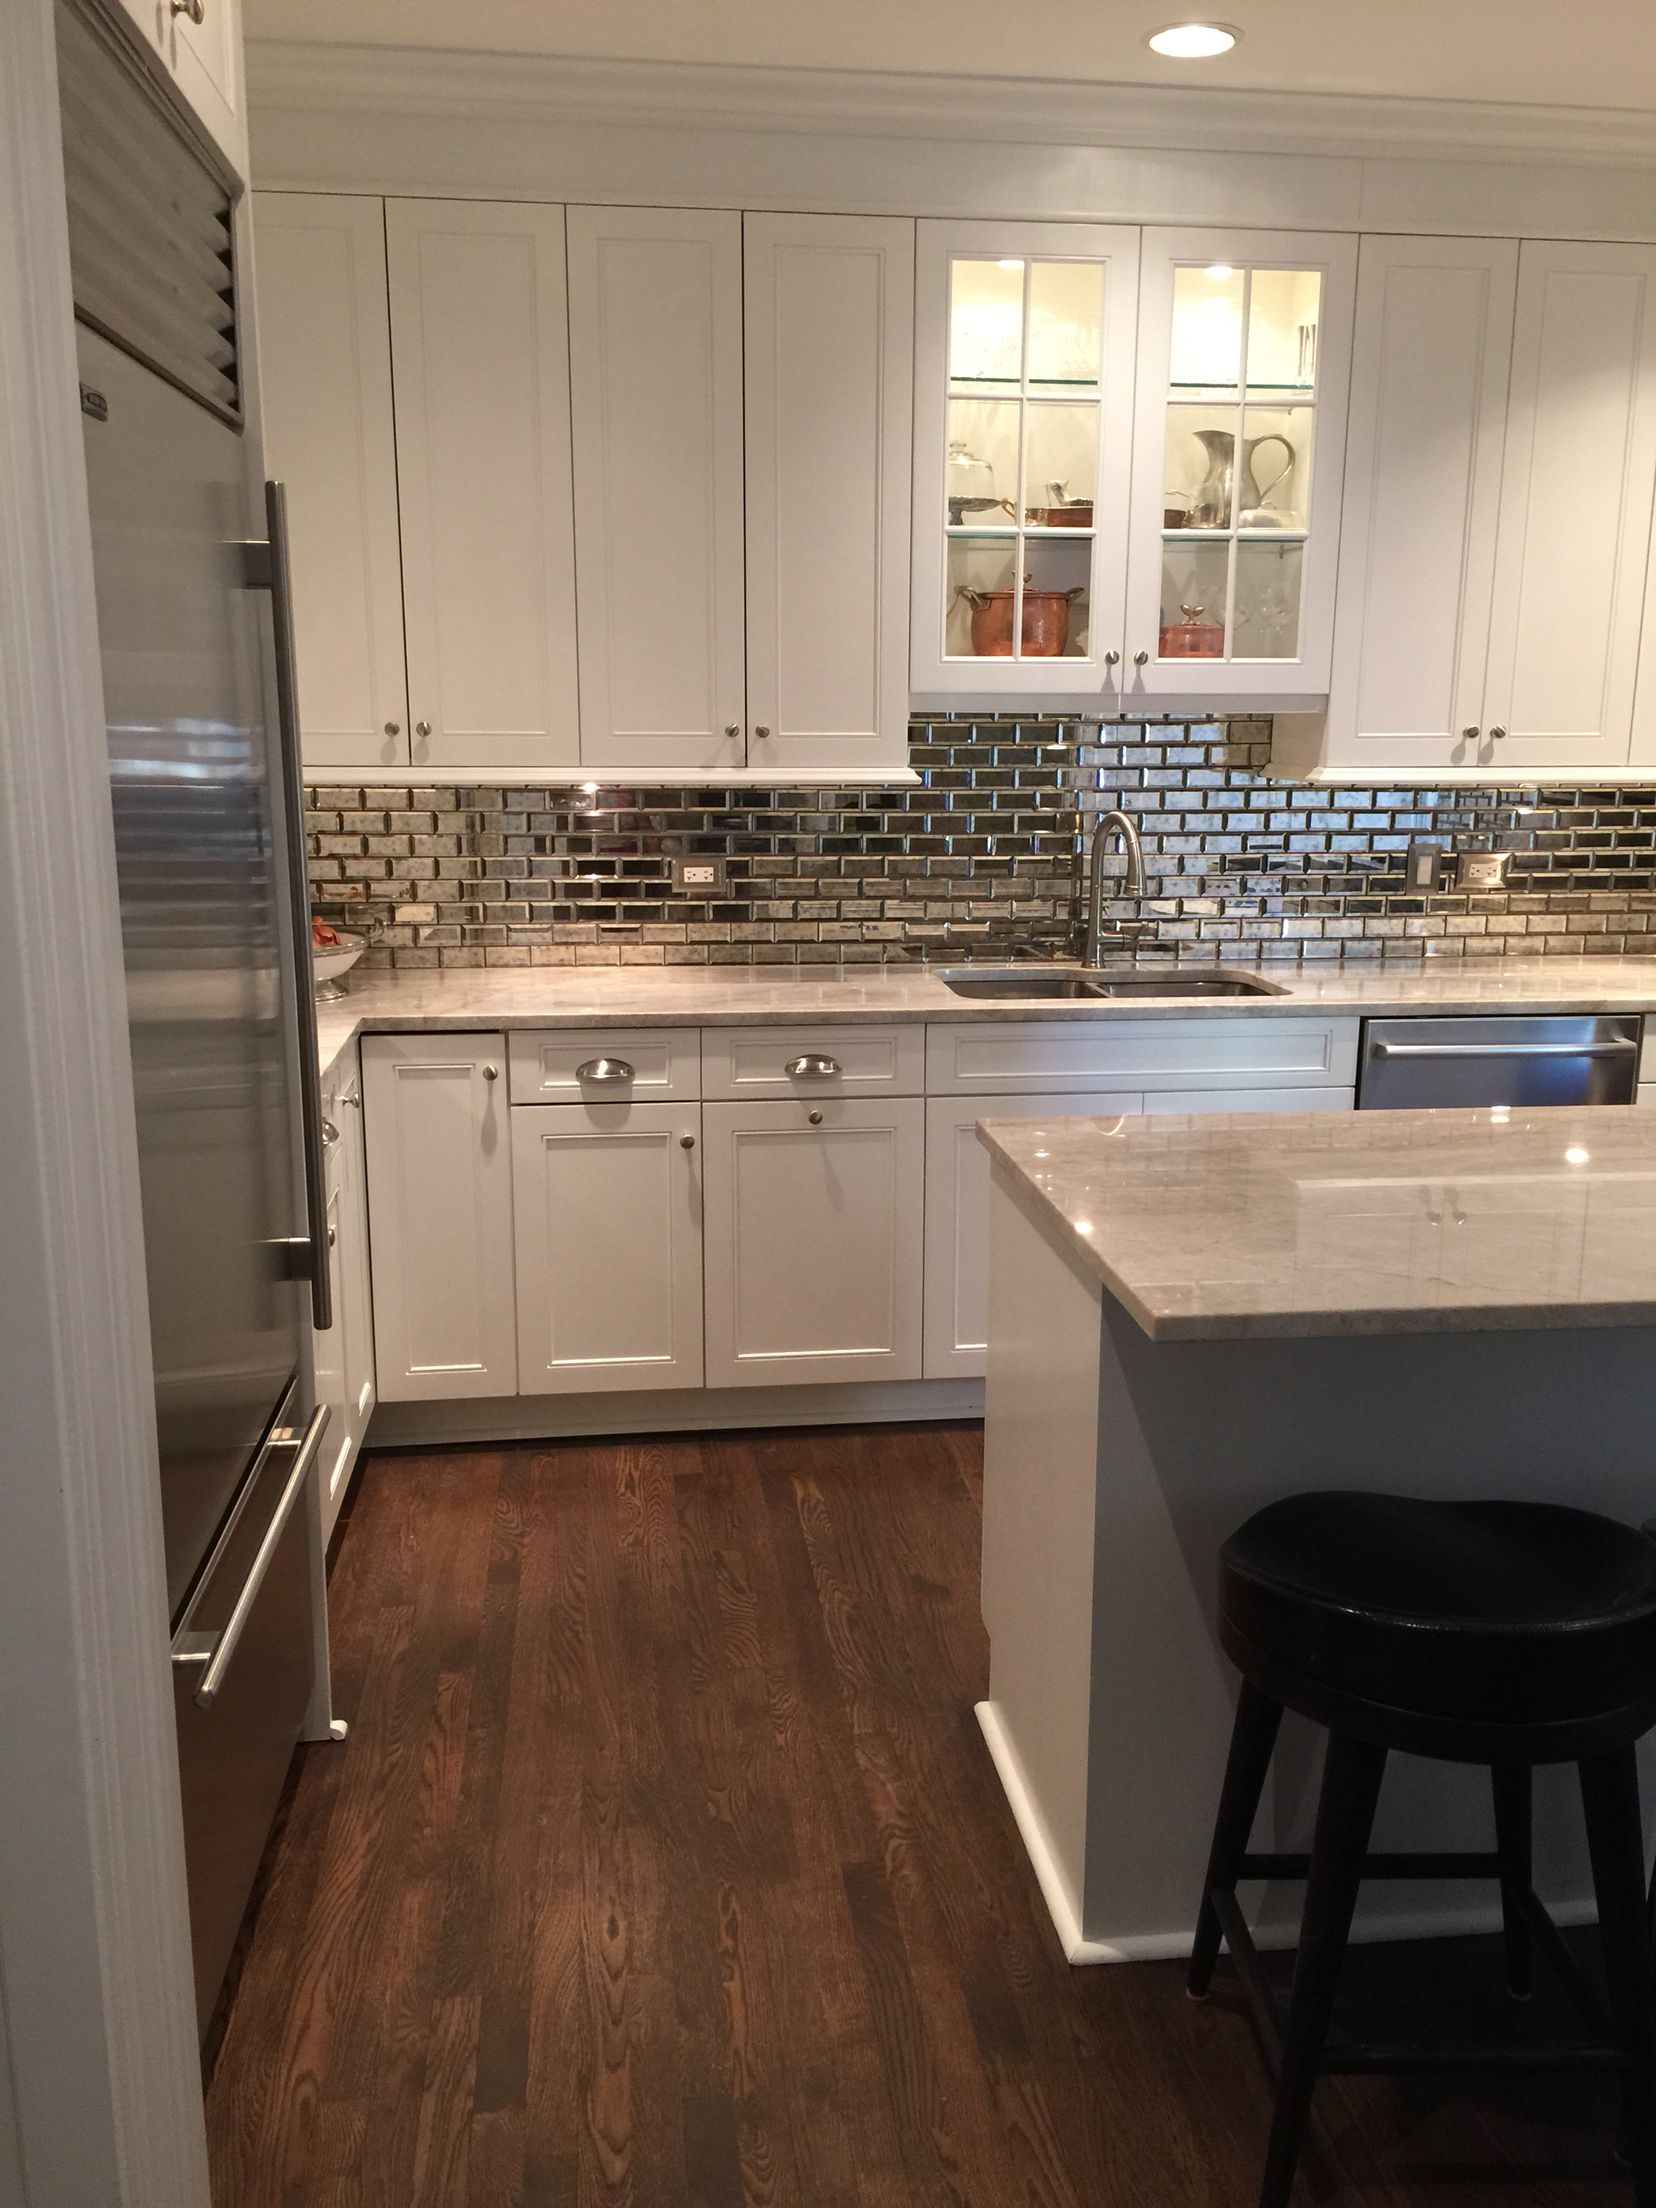 - White Kitchen Backslash 2016. Antique Mirror Subway Tiles. Unique